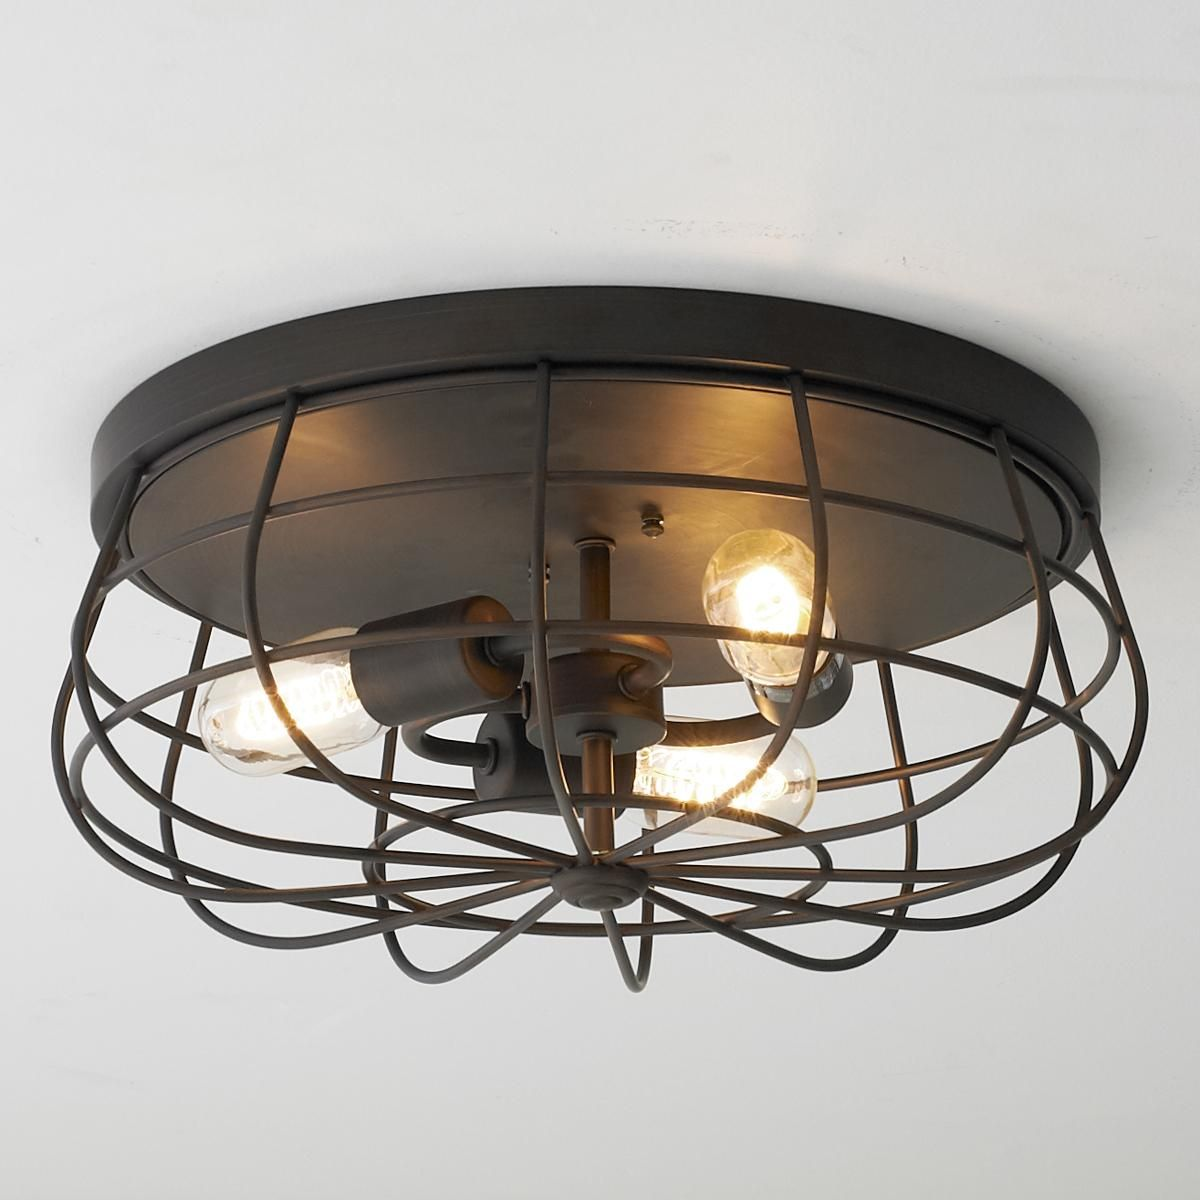 Industrial Cage Ceiling Light Ceiling Lights Ceiling And Industrial